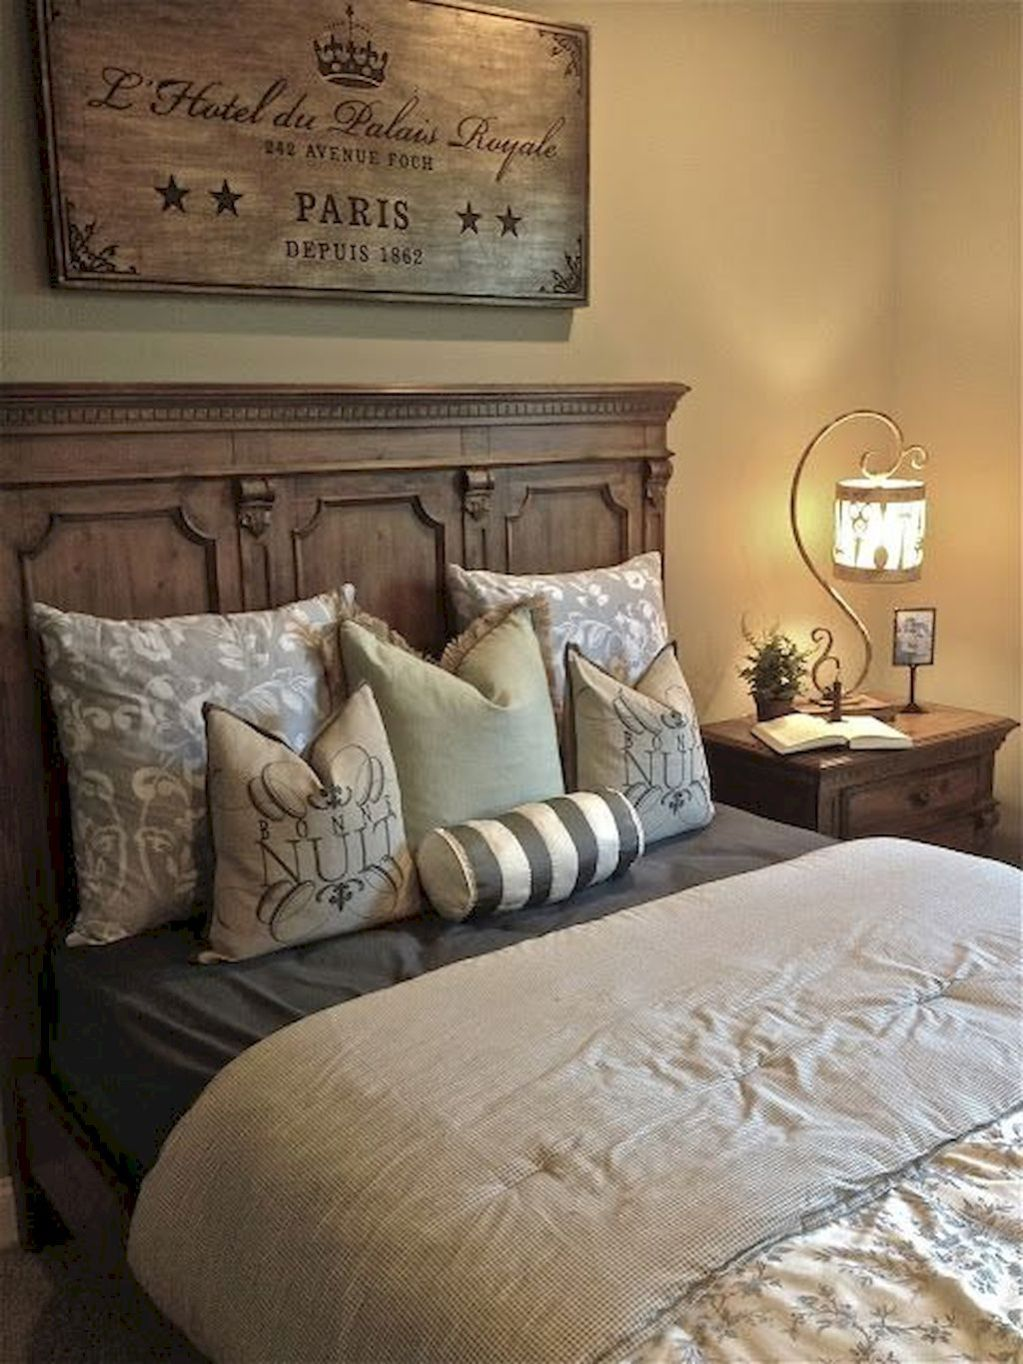 75 Affordable French Country Bedroom Decor Ideas Decoradeas Country Bedroom Decor French Country Decorating Bedroom Country Bedroom